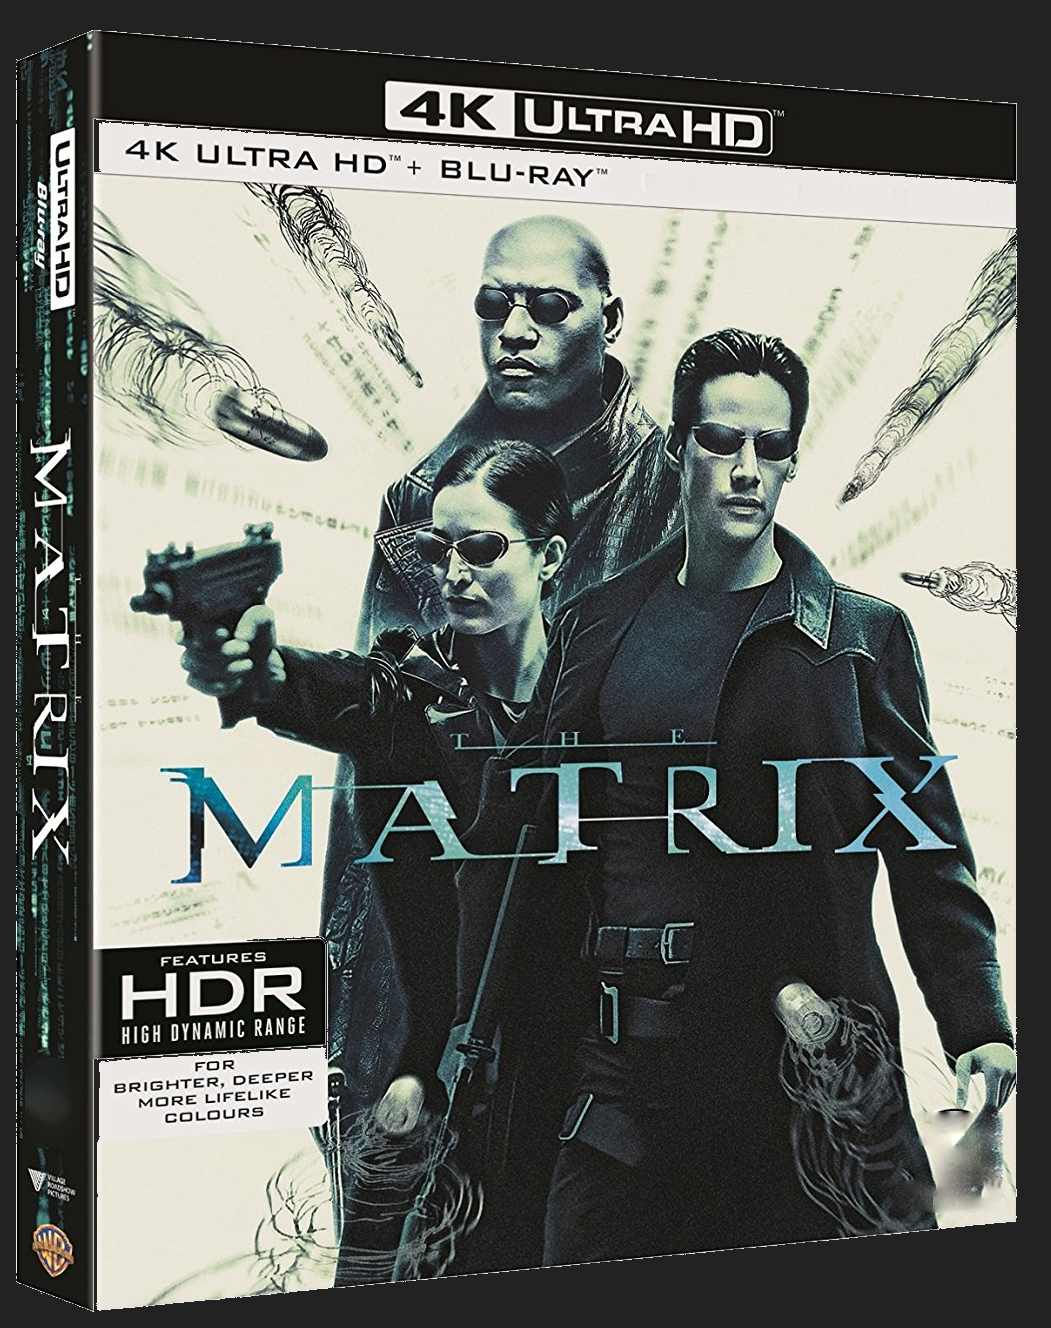 Matrix (4K ULTRA HD) - UHD Blu-ray + Blu-ray + Bonus disc (3 BD)